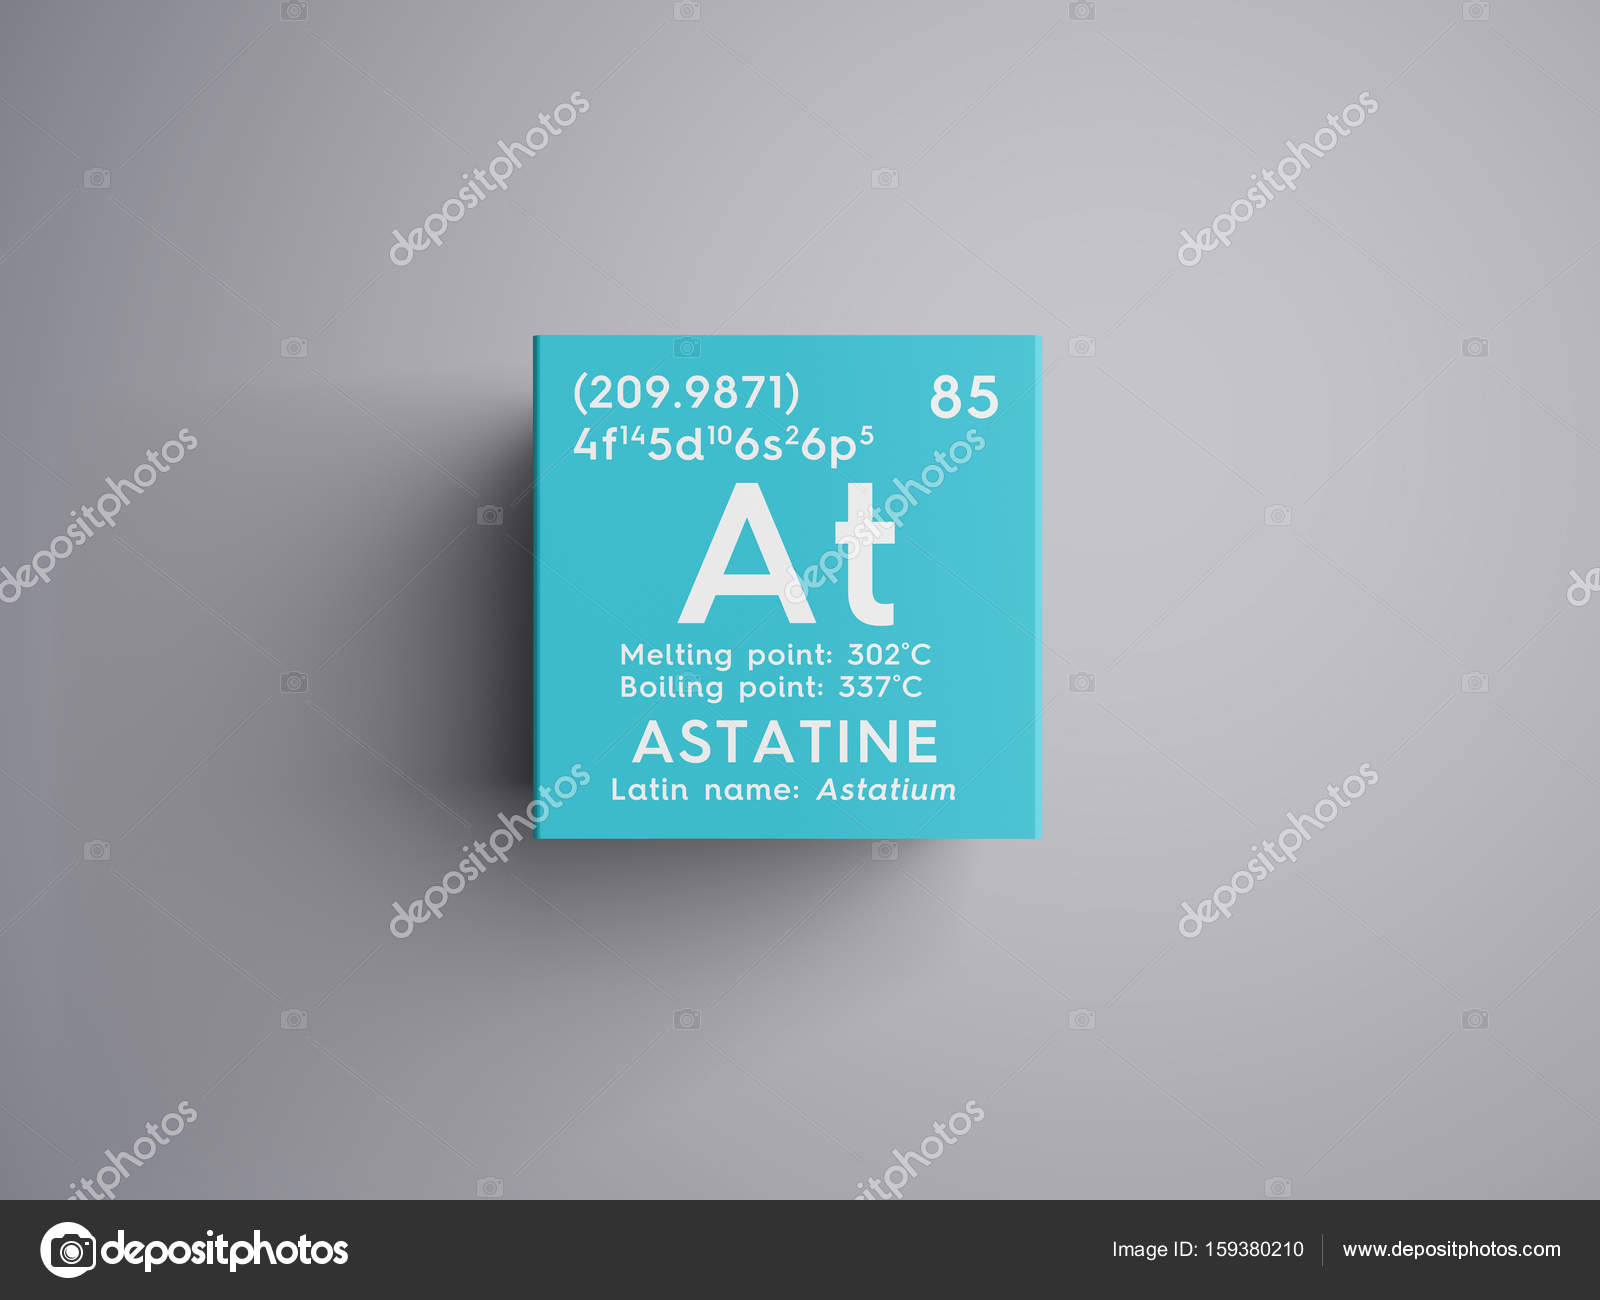 Astatine astatium halogens chemical element of mendeleevs astatine astatium halogens chemical element of mendeleevs periodic table astatine in square cube creative concept photo by sanches812 urtaz Gallery